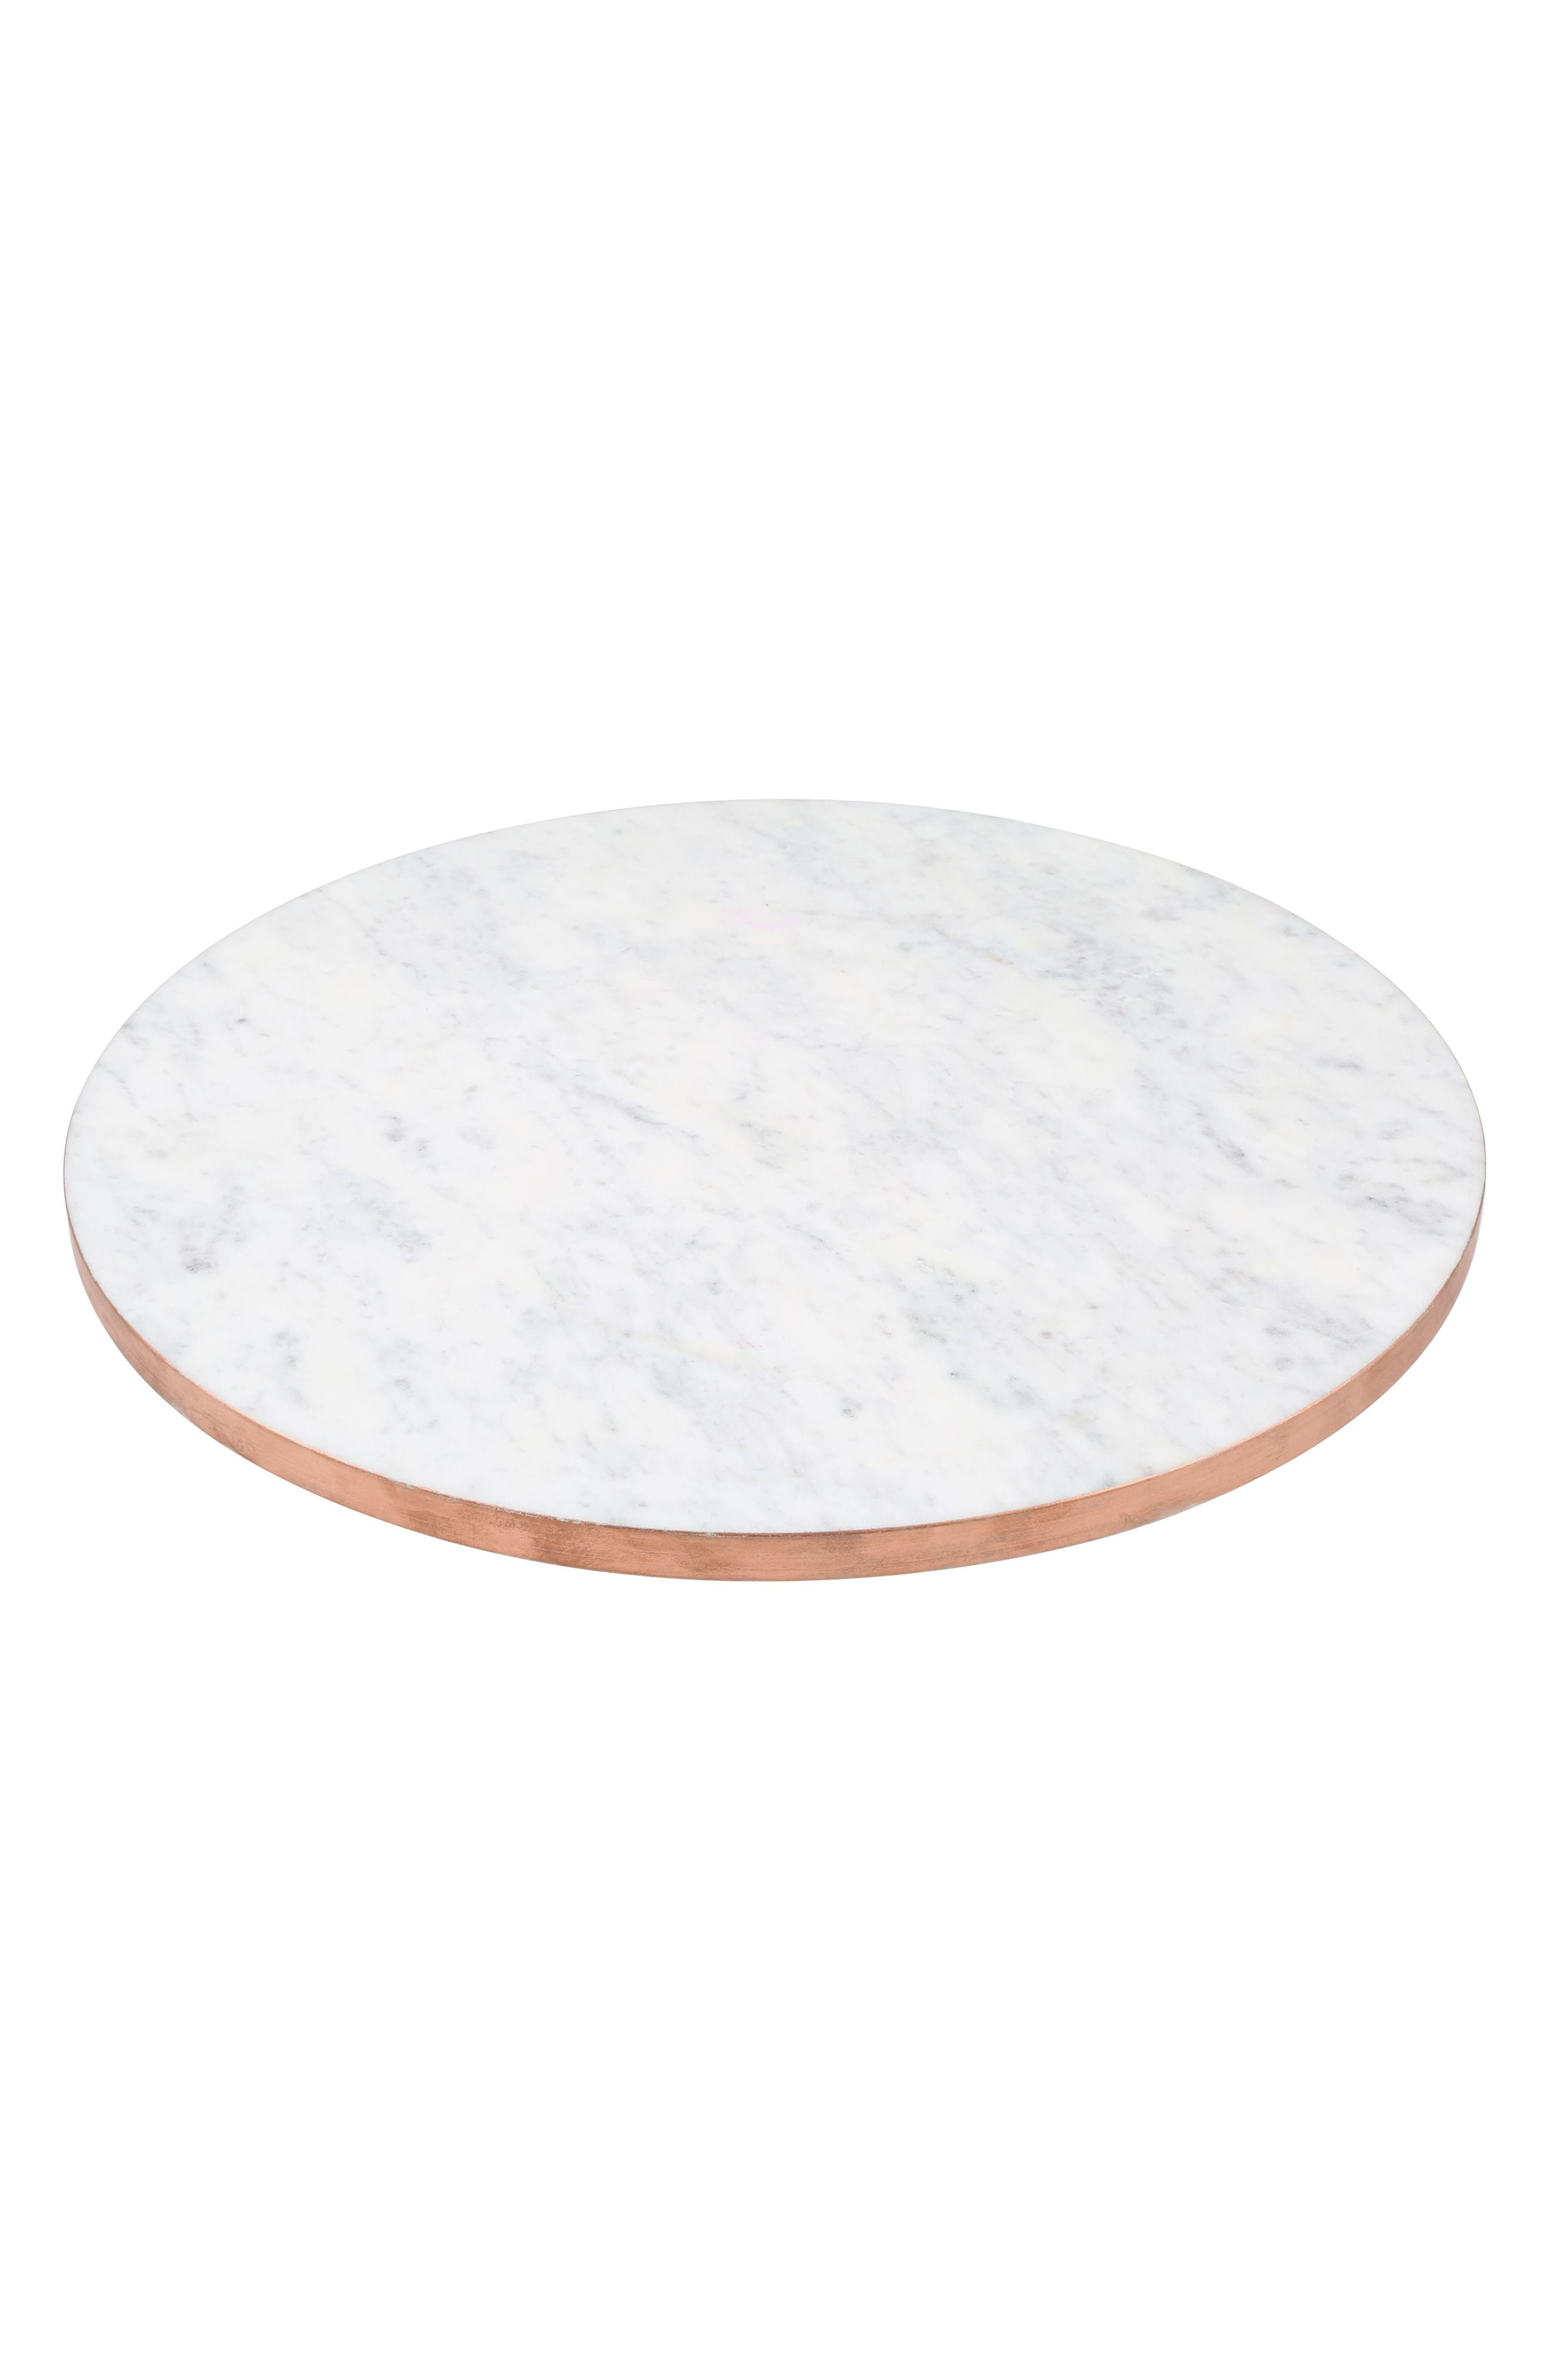 Main Image - Thirstystone Copper Edge Marble Lazy Susan